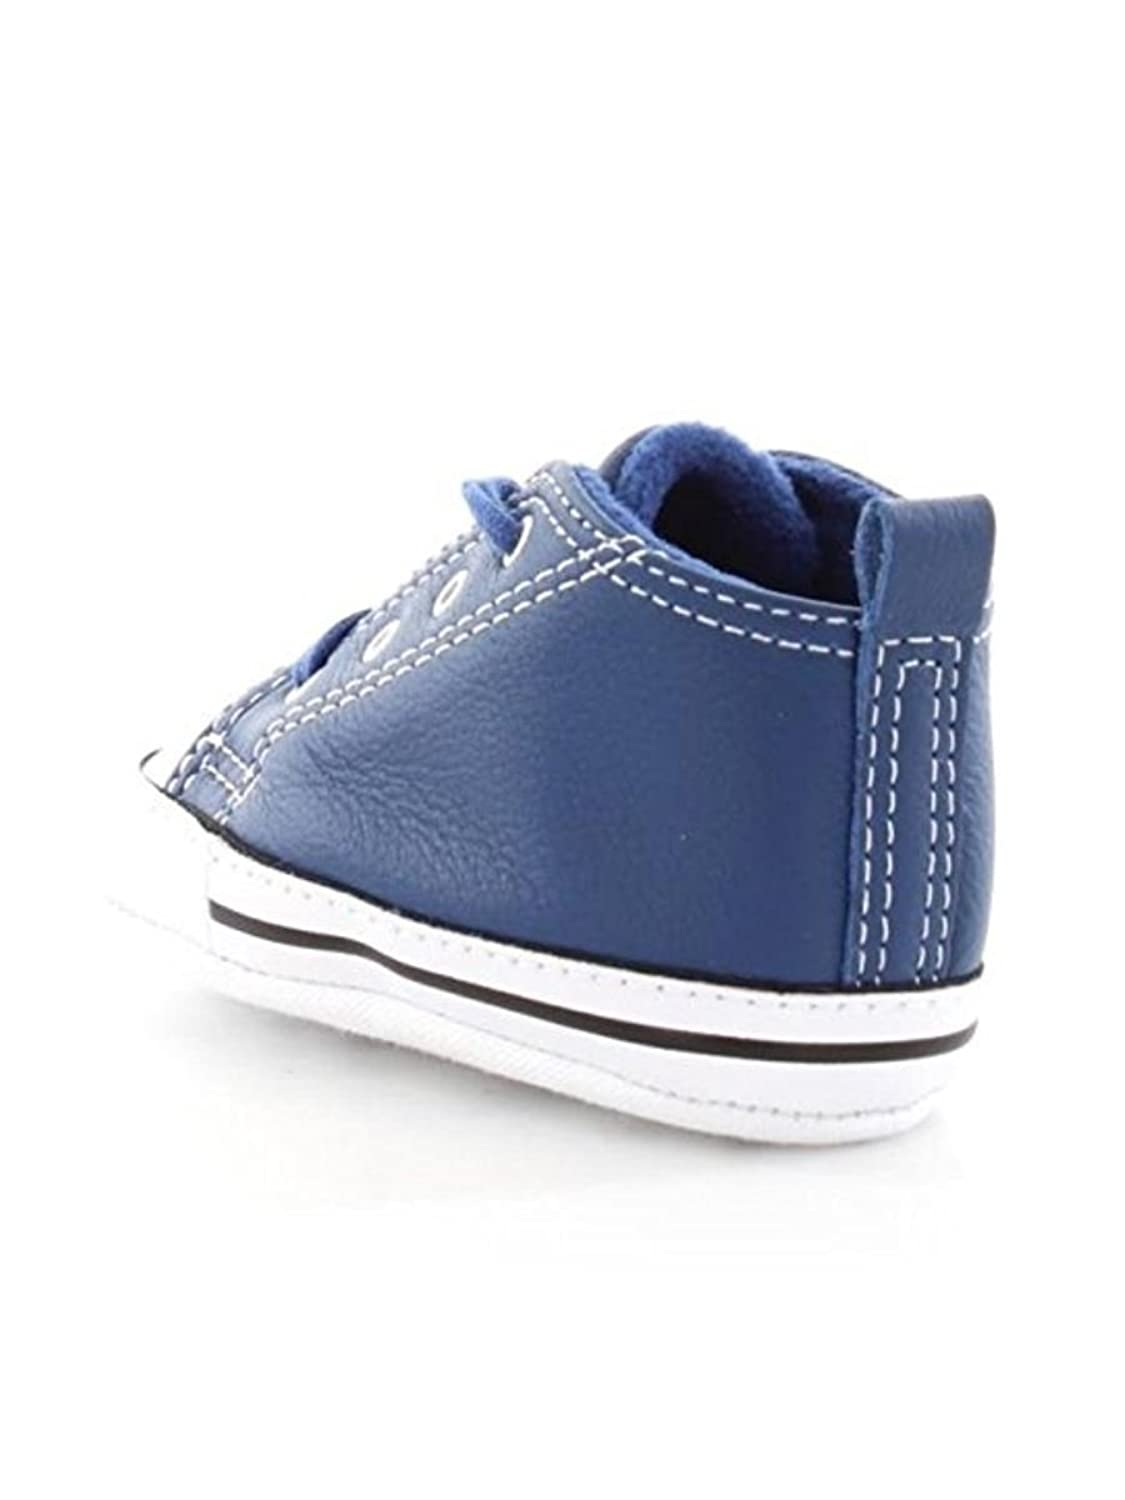 Converse 855119c First Star Royal Sneakers Bambino Royal 19